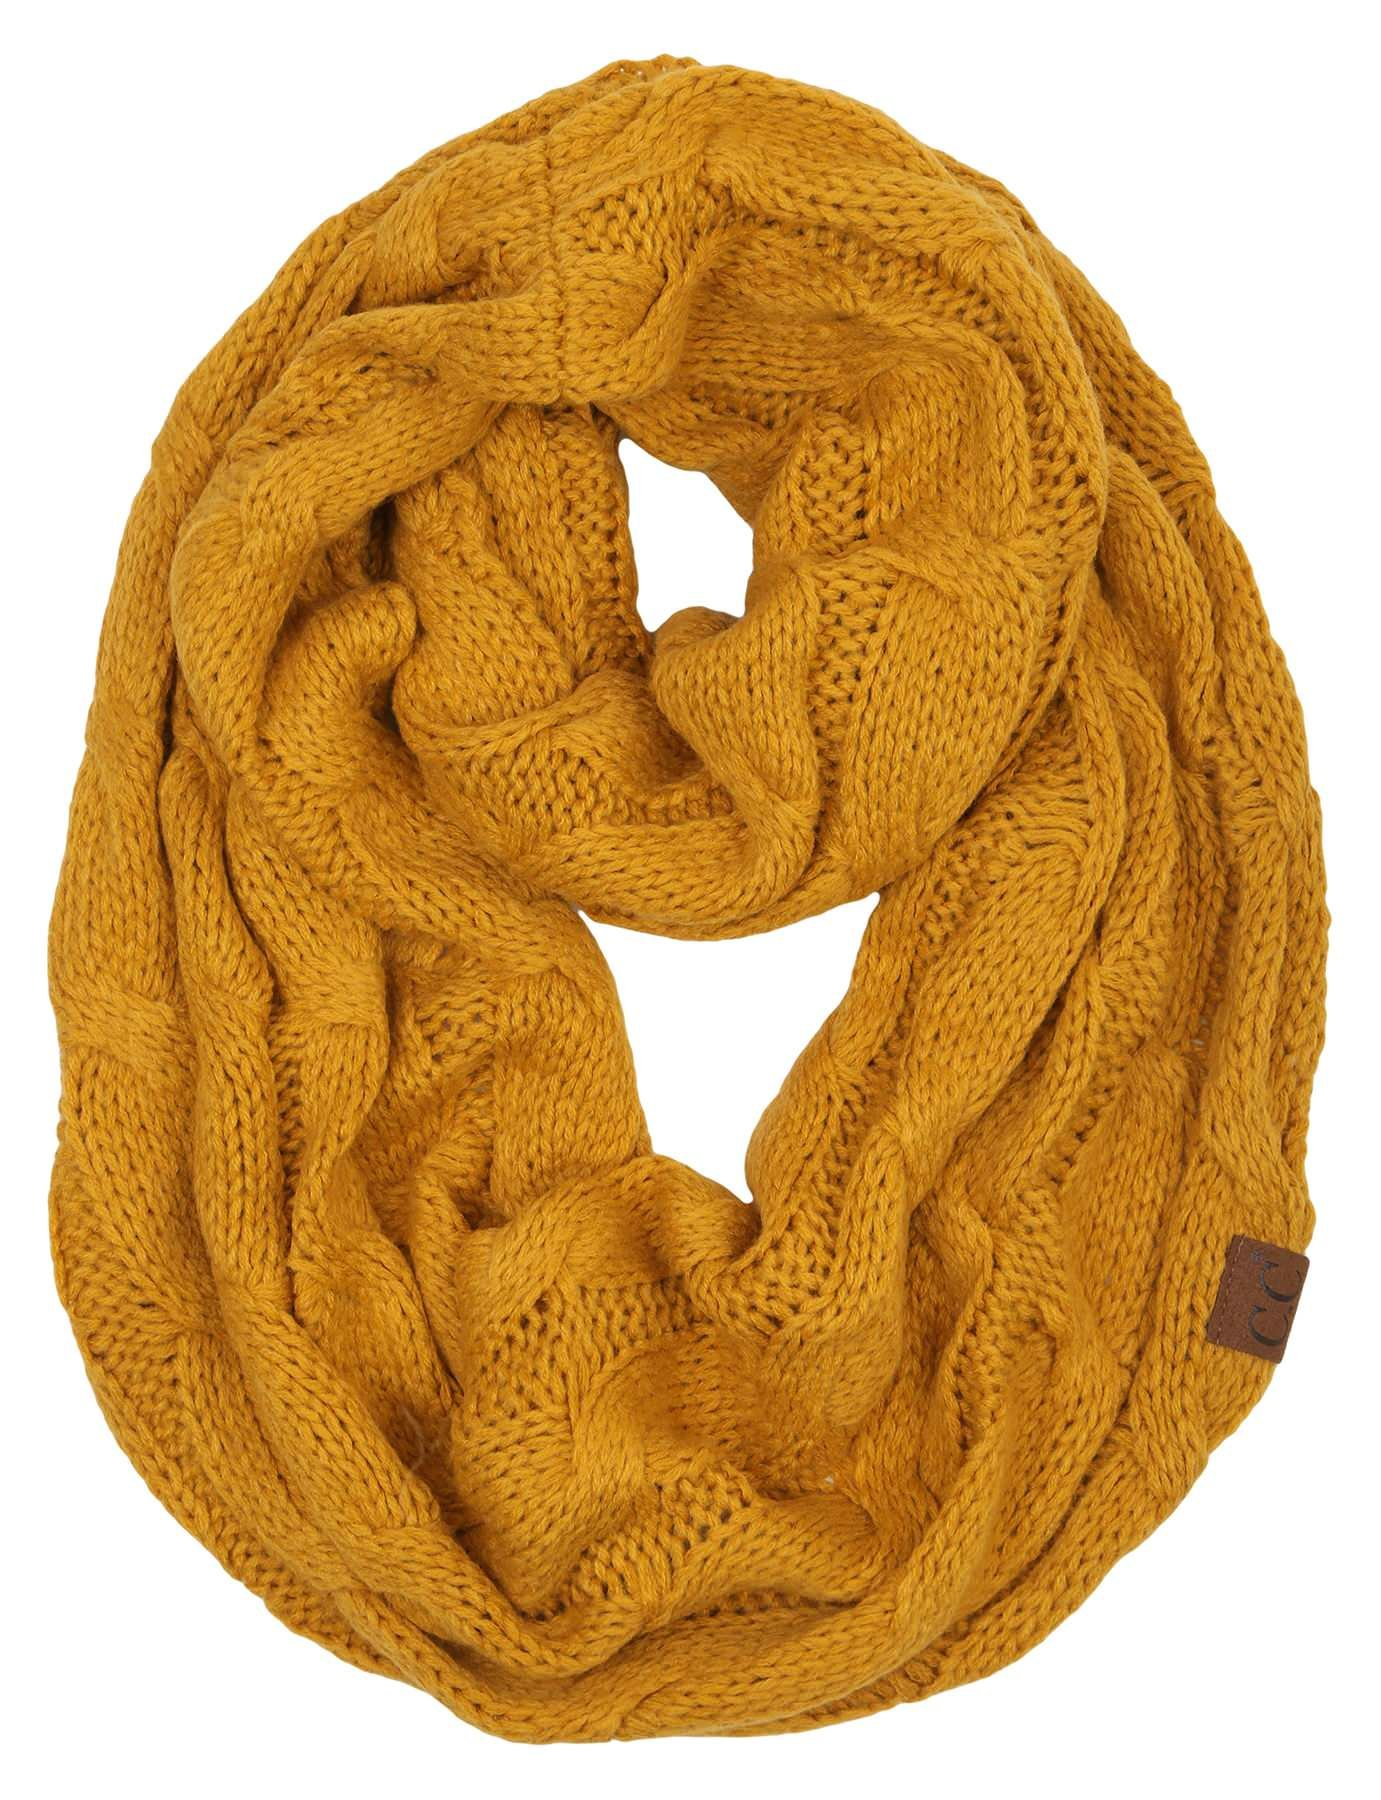 S1-6100-72 Funky Junque Infinity Scarf - Mustard (Solid) by Funky Junque (Image #1)